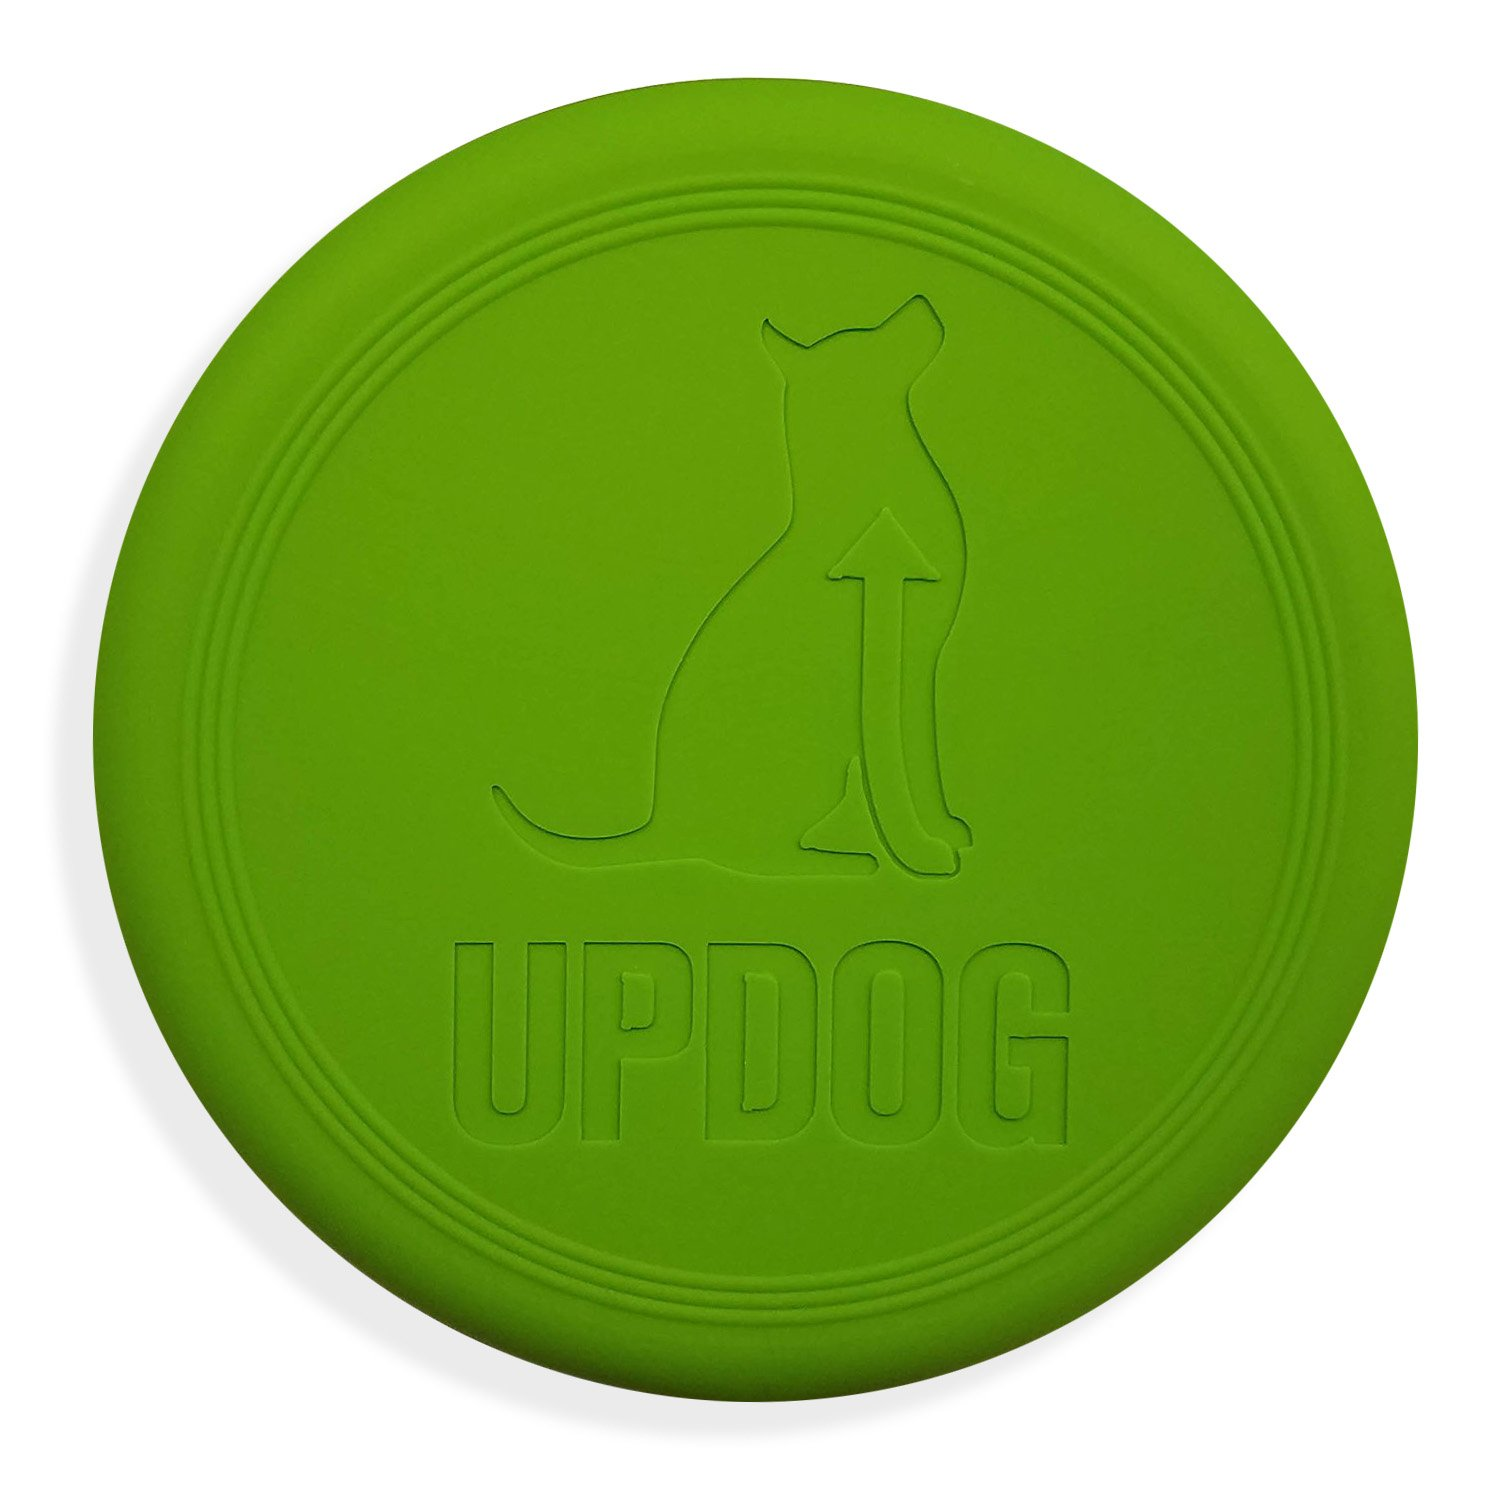 Dog Frisbee | Made in USA | UpDog Products Small 6-Inch Flying Disc for Dogs (Green)